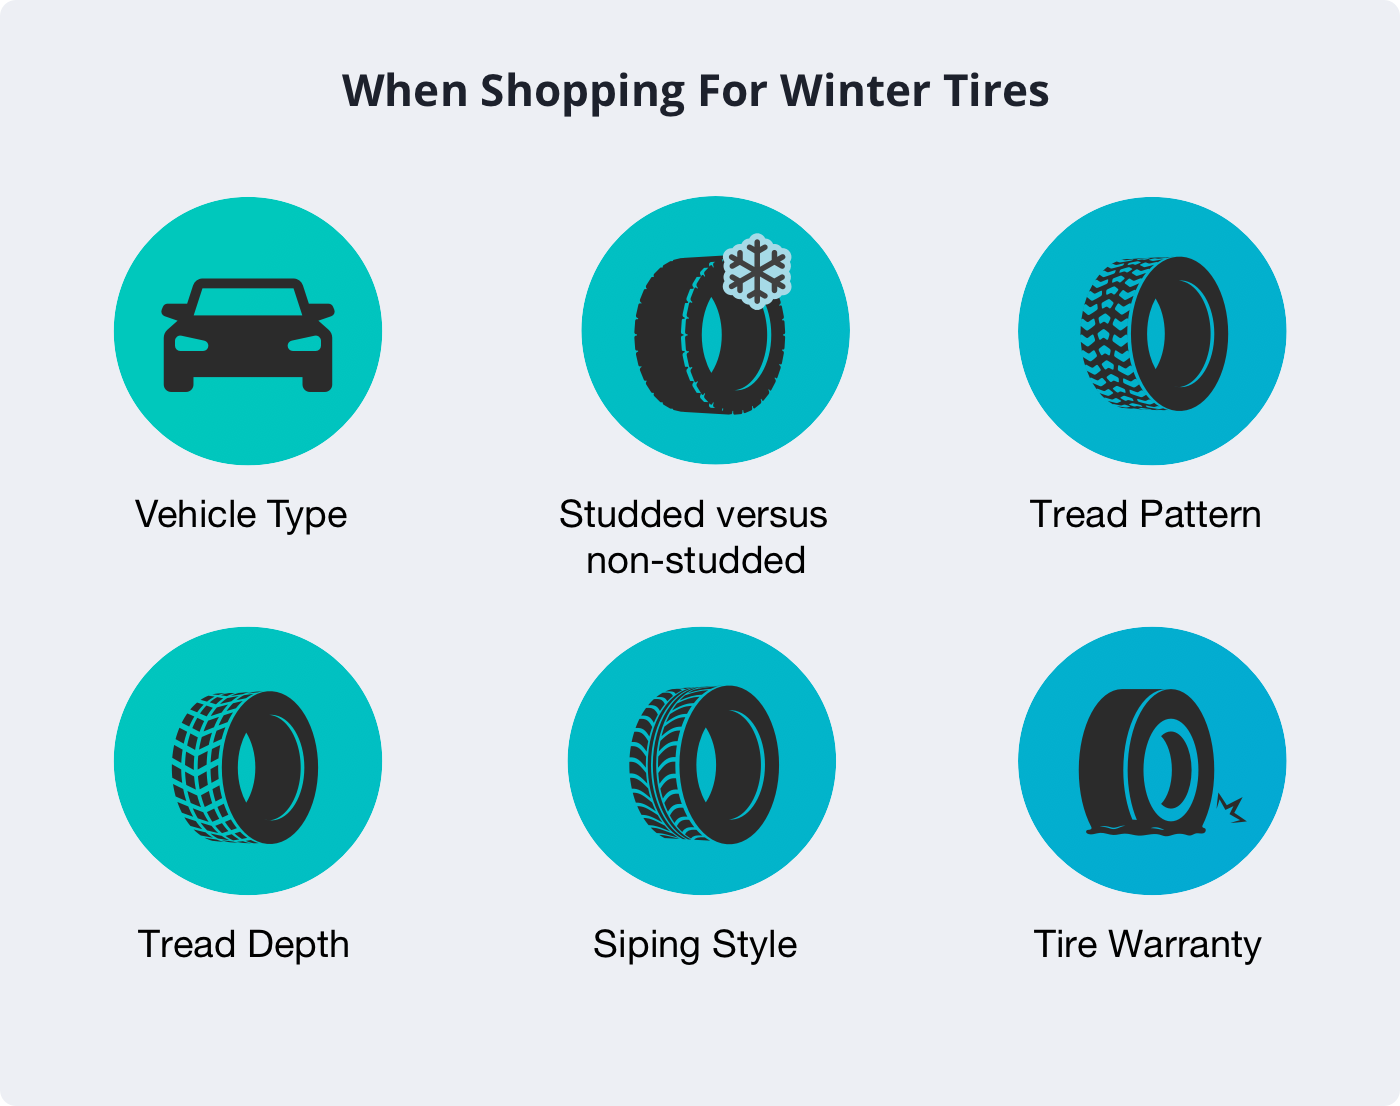 Shopping for winter tires